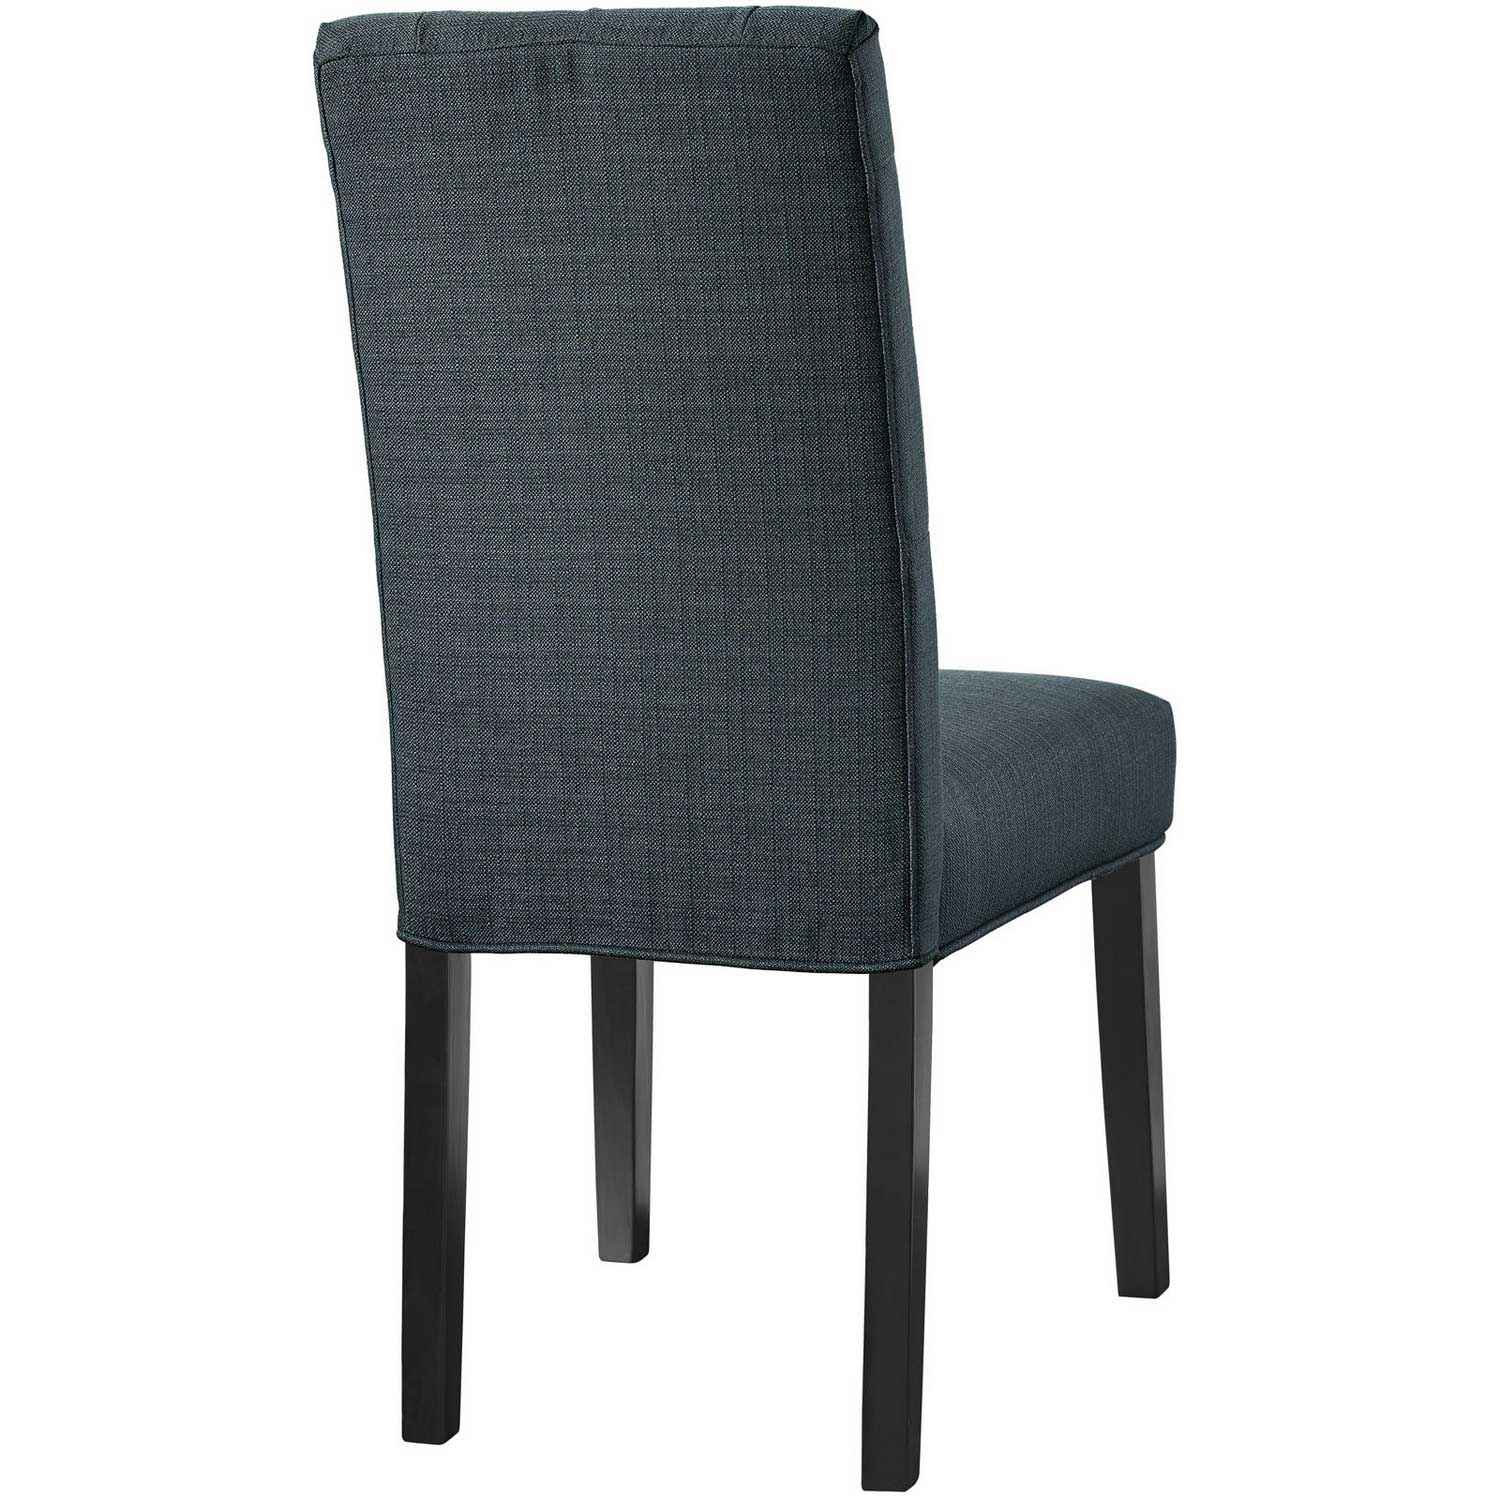 Modway Confer Dining Fabric Side Chair - Gray